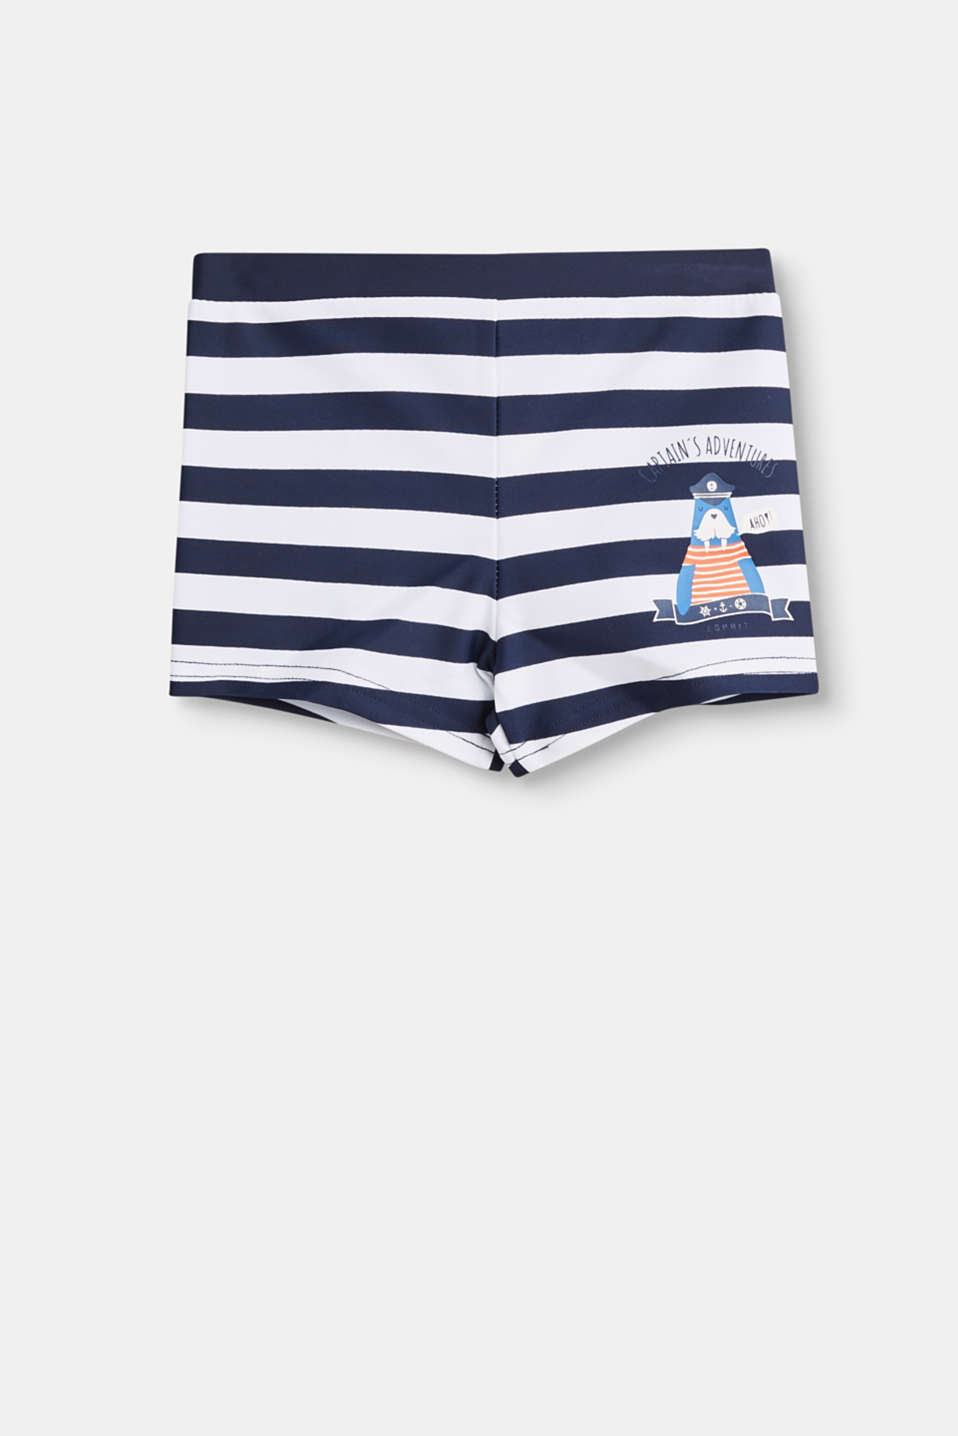 Ahoy! These striped retro swim shorts with a seal print are just the thing for little swimmers